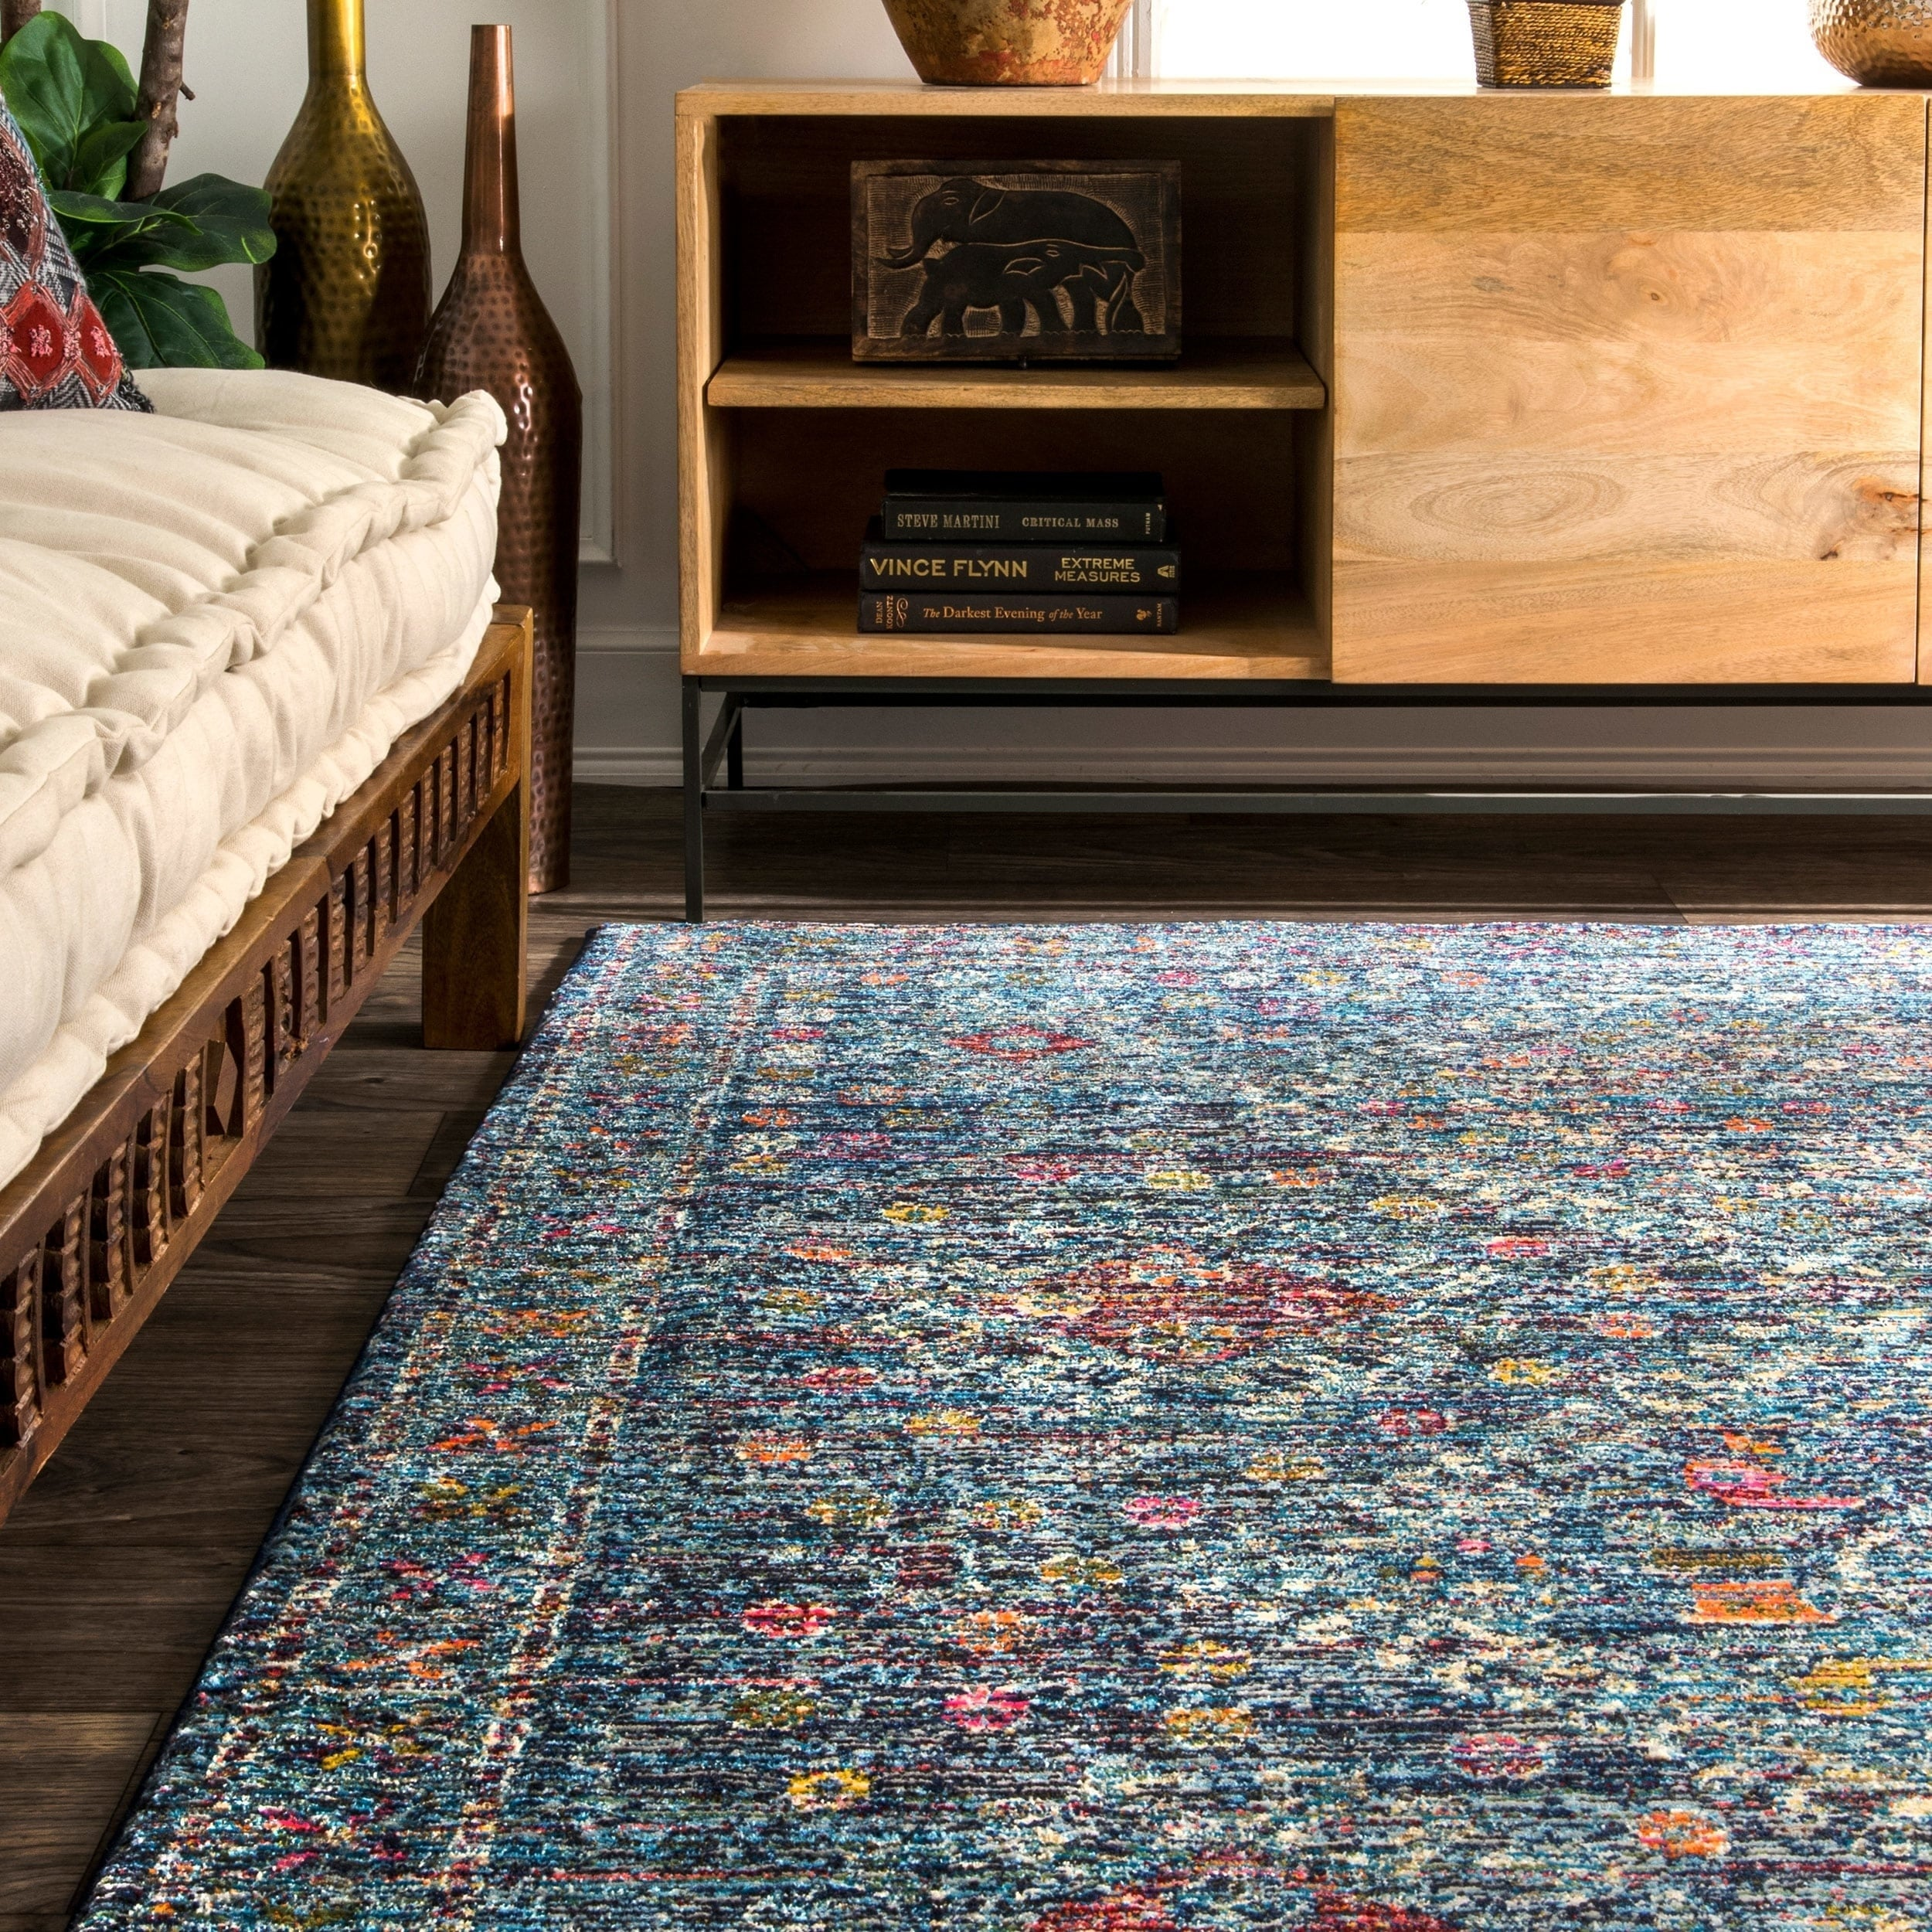 Nuloom Blue Transitional Tribal Stylish Faded Border Area Rug 8 X 10 Ships To Canada Ca 21642333